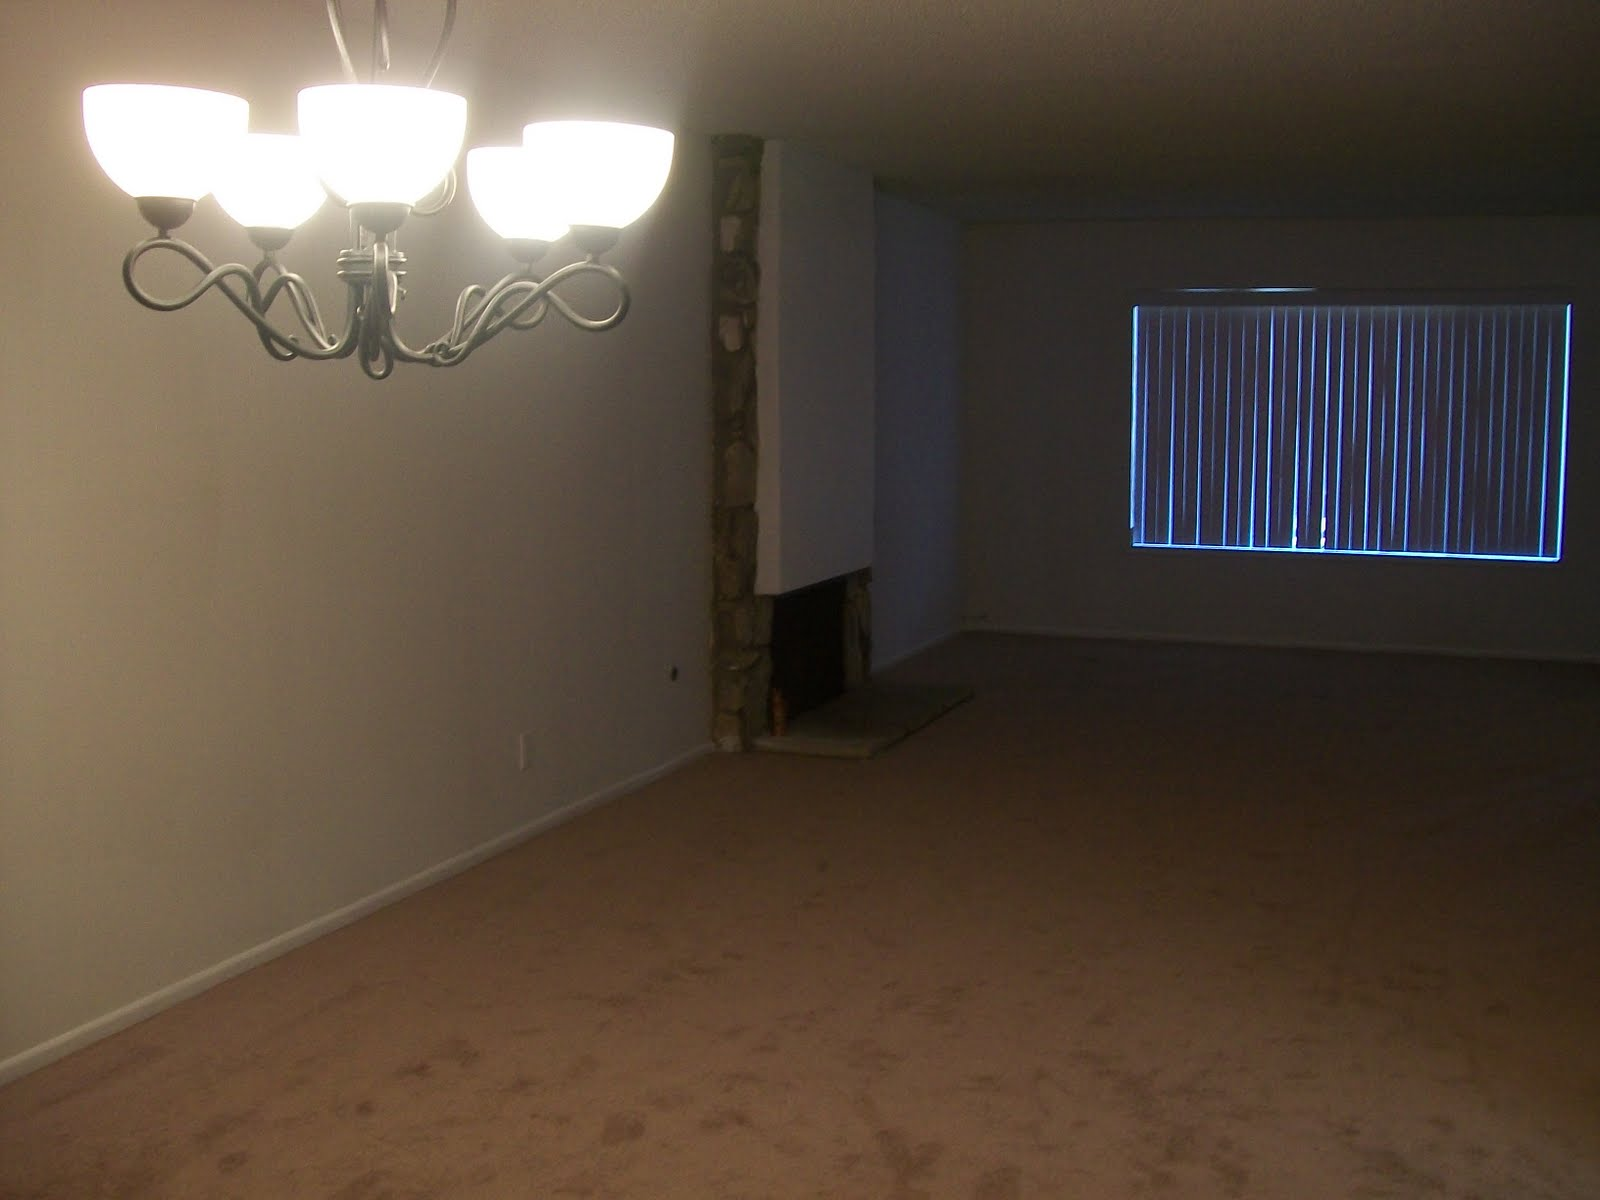 Professional Home Staging Interior Design Shout Out For Help